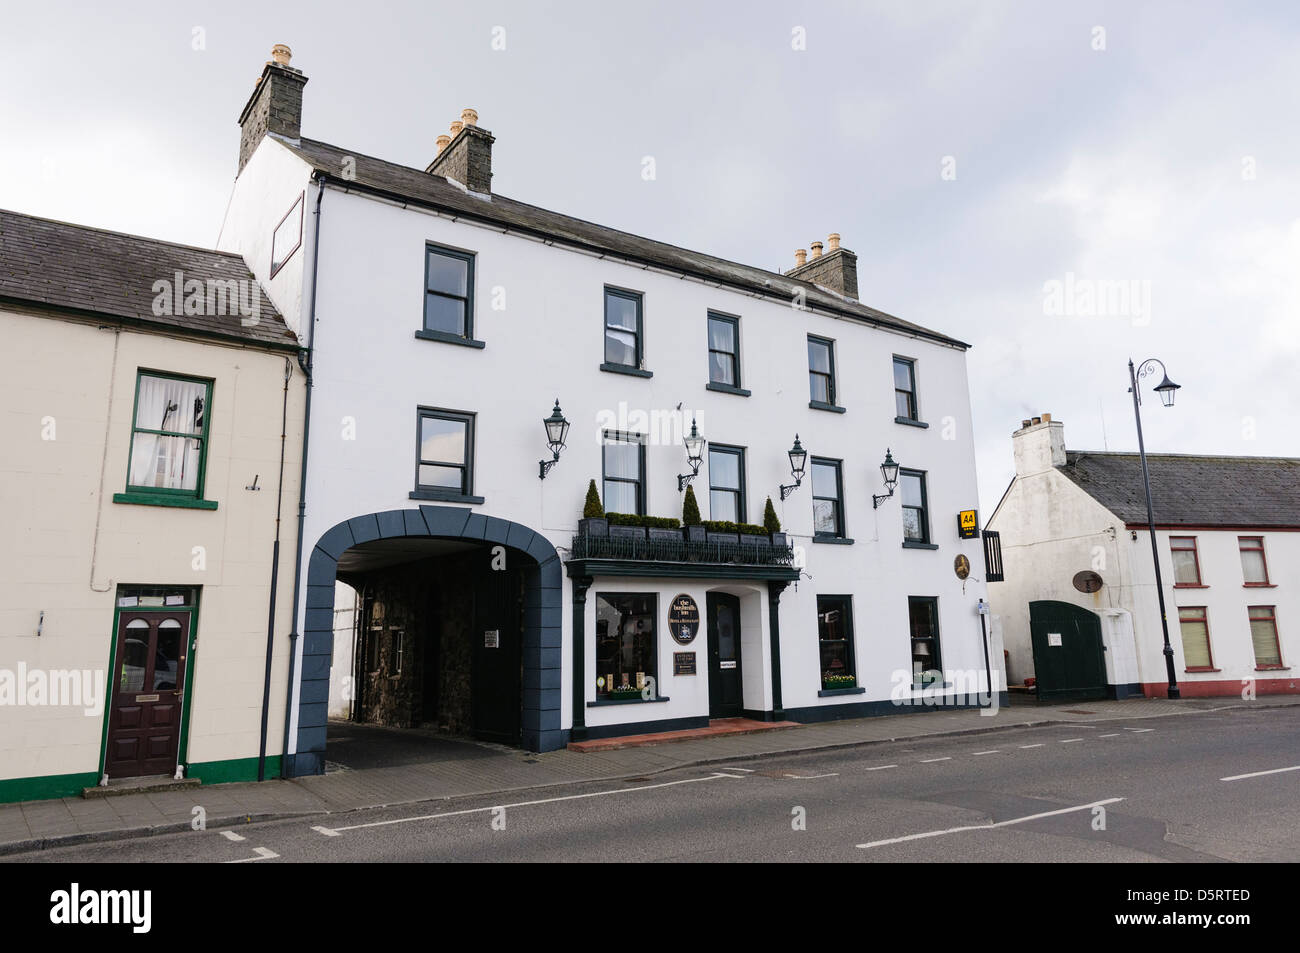 The Bushmills Inn - Stock Image